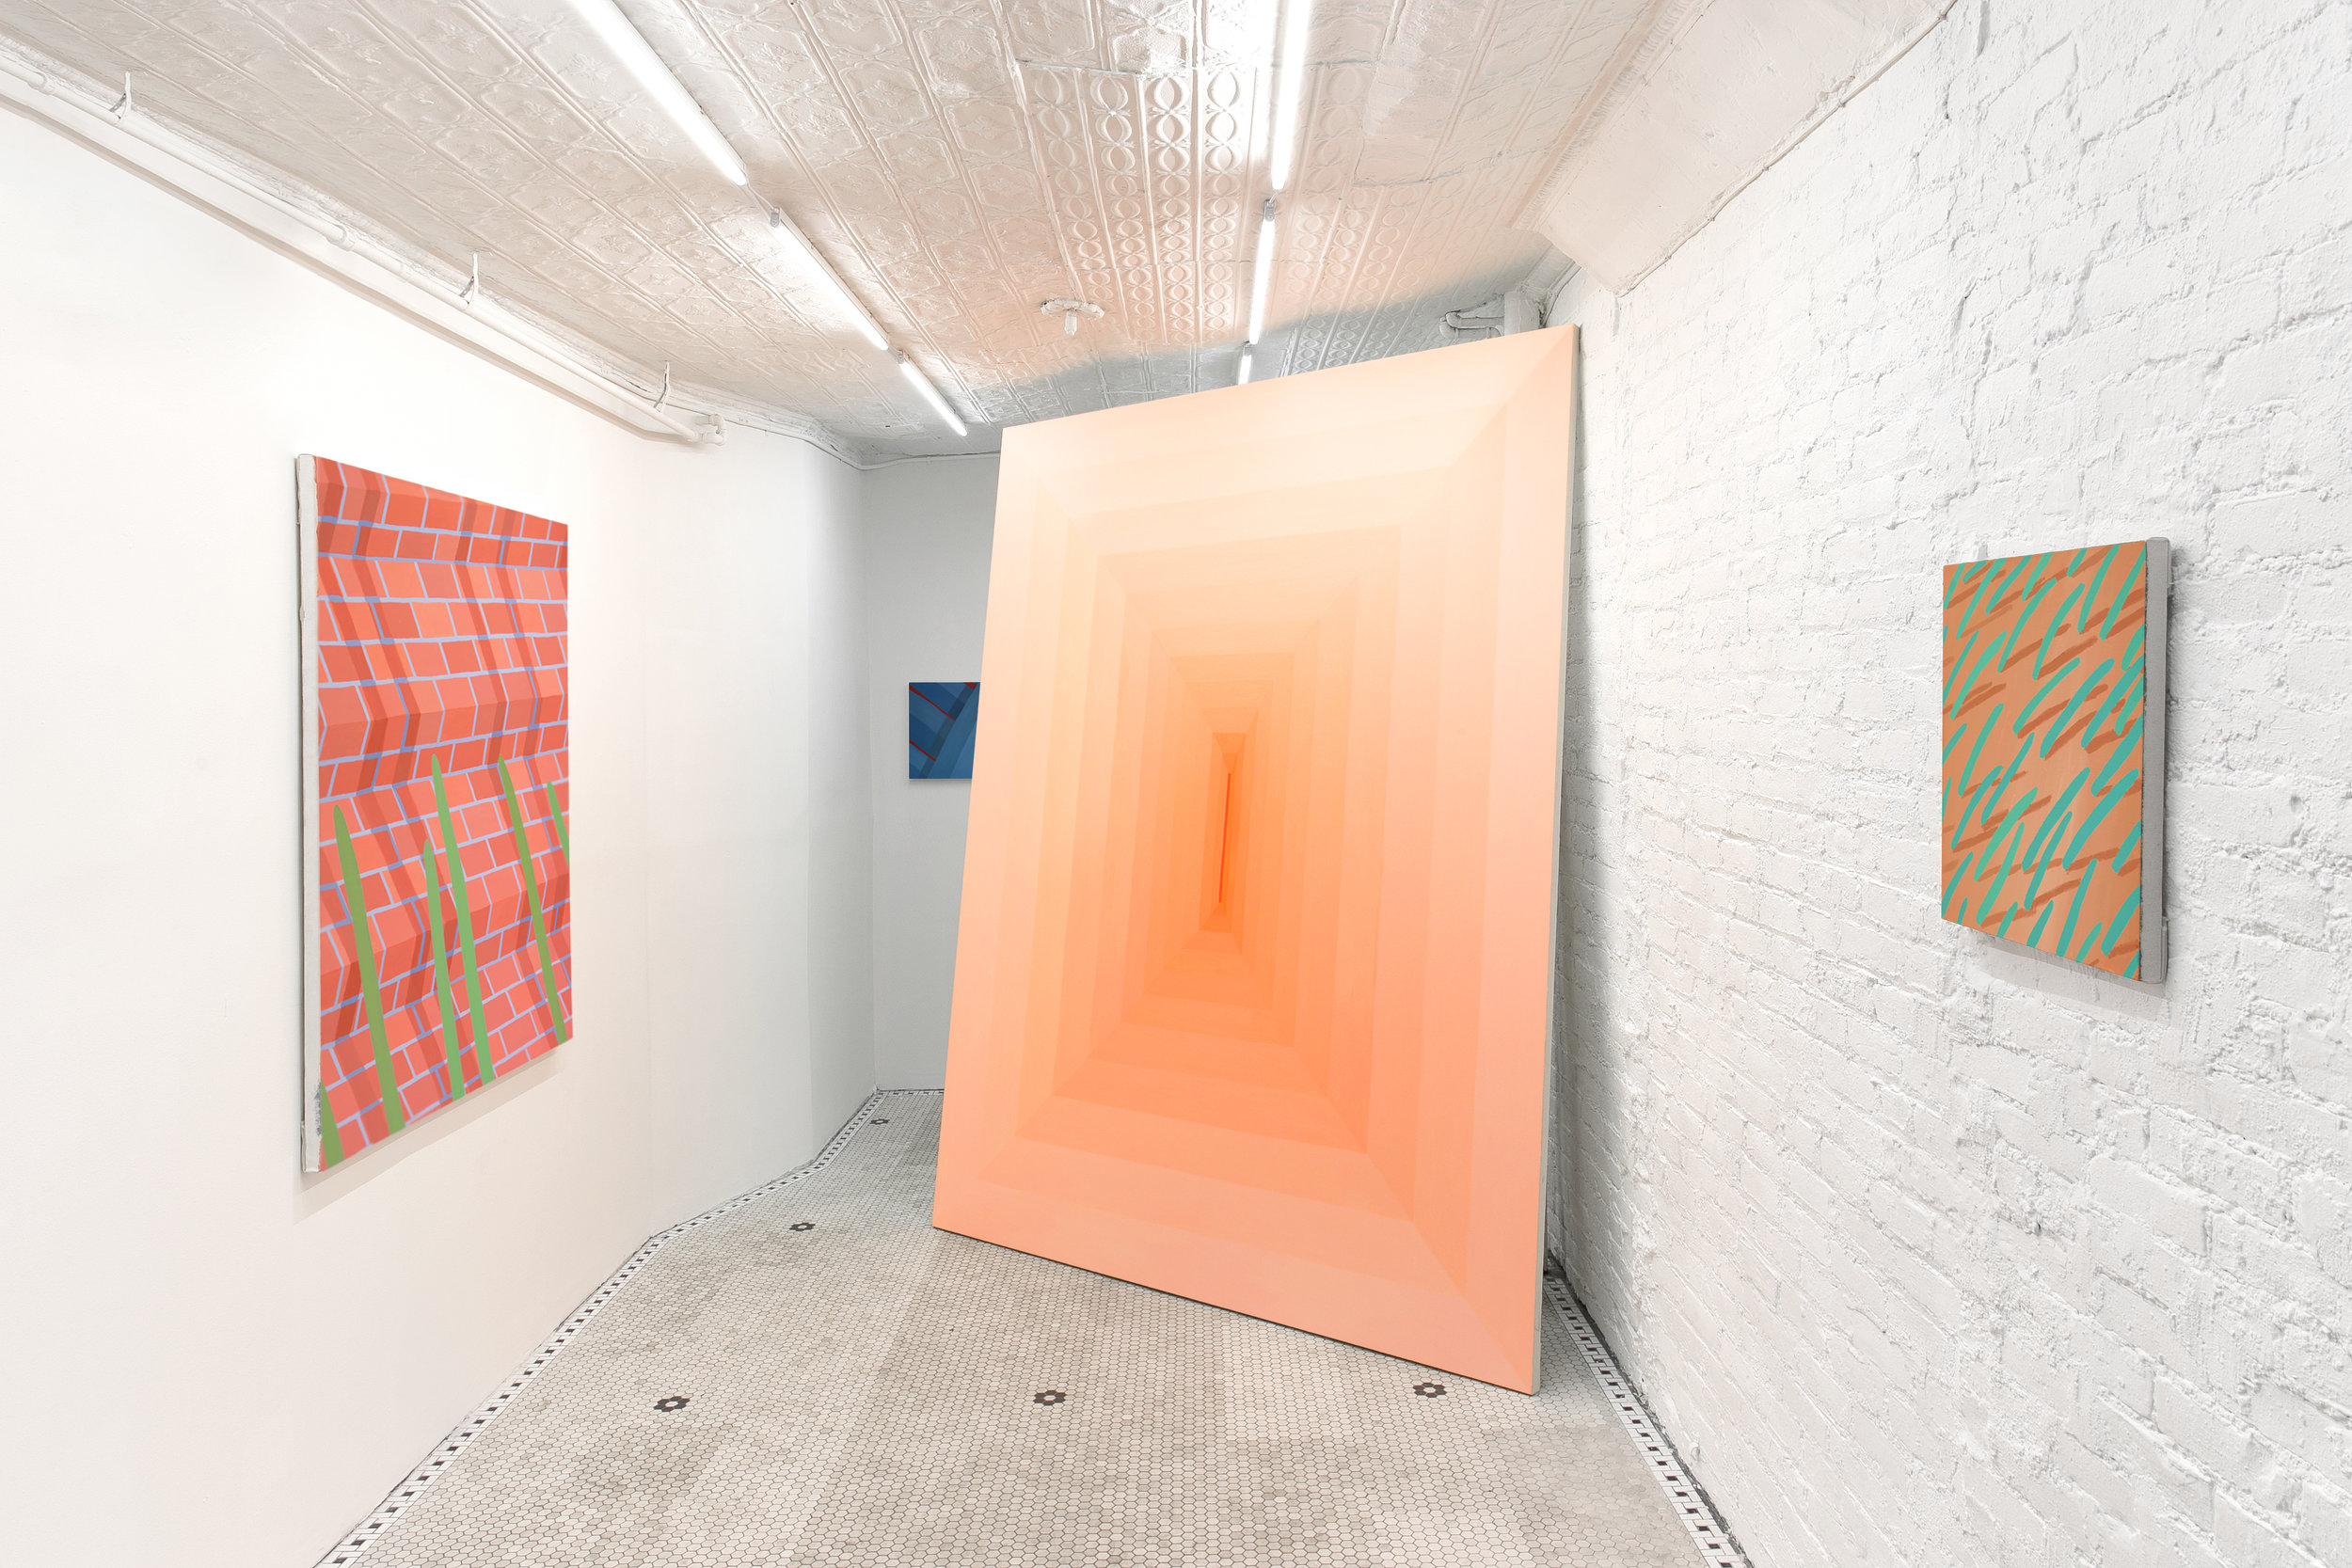 Installation of 'Dwell' at Miller Contemporary NYC 2016, Photo by Kirsten Kilponen. Courtesy MILLER, New York